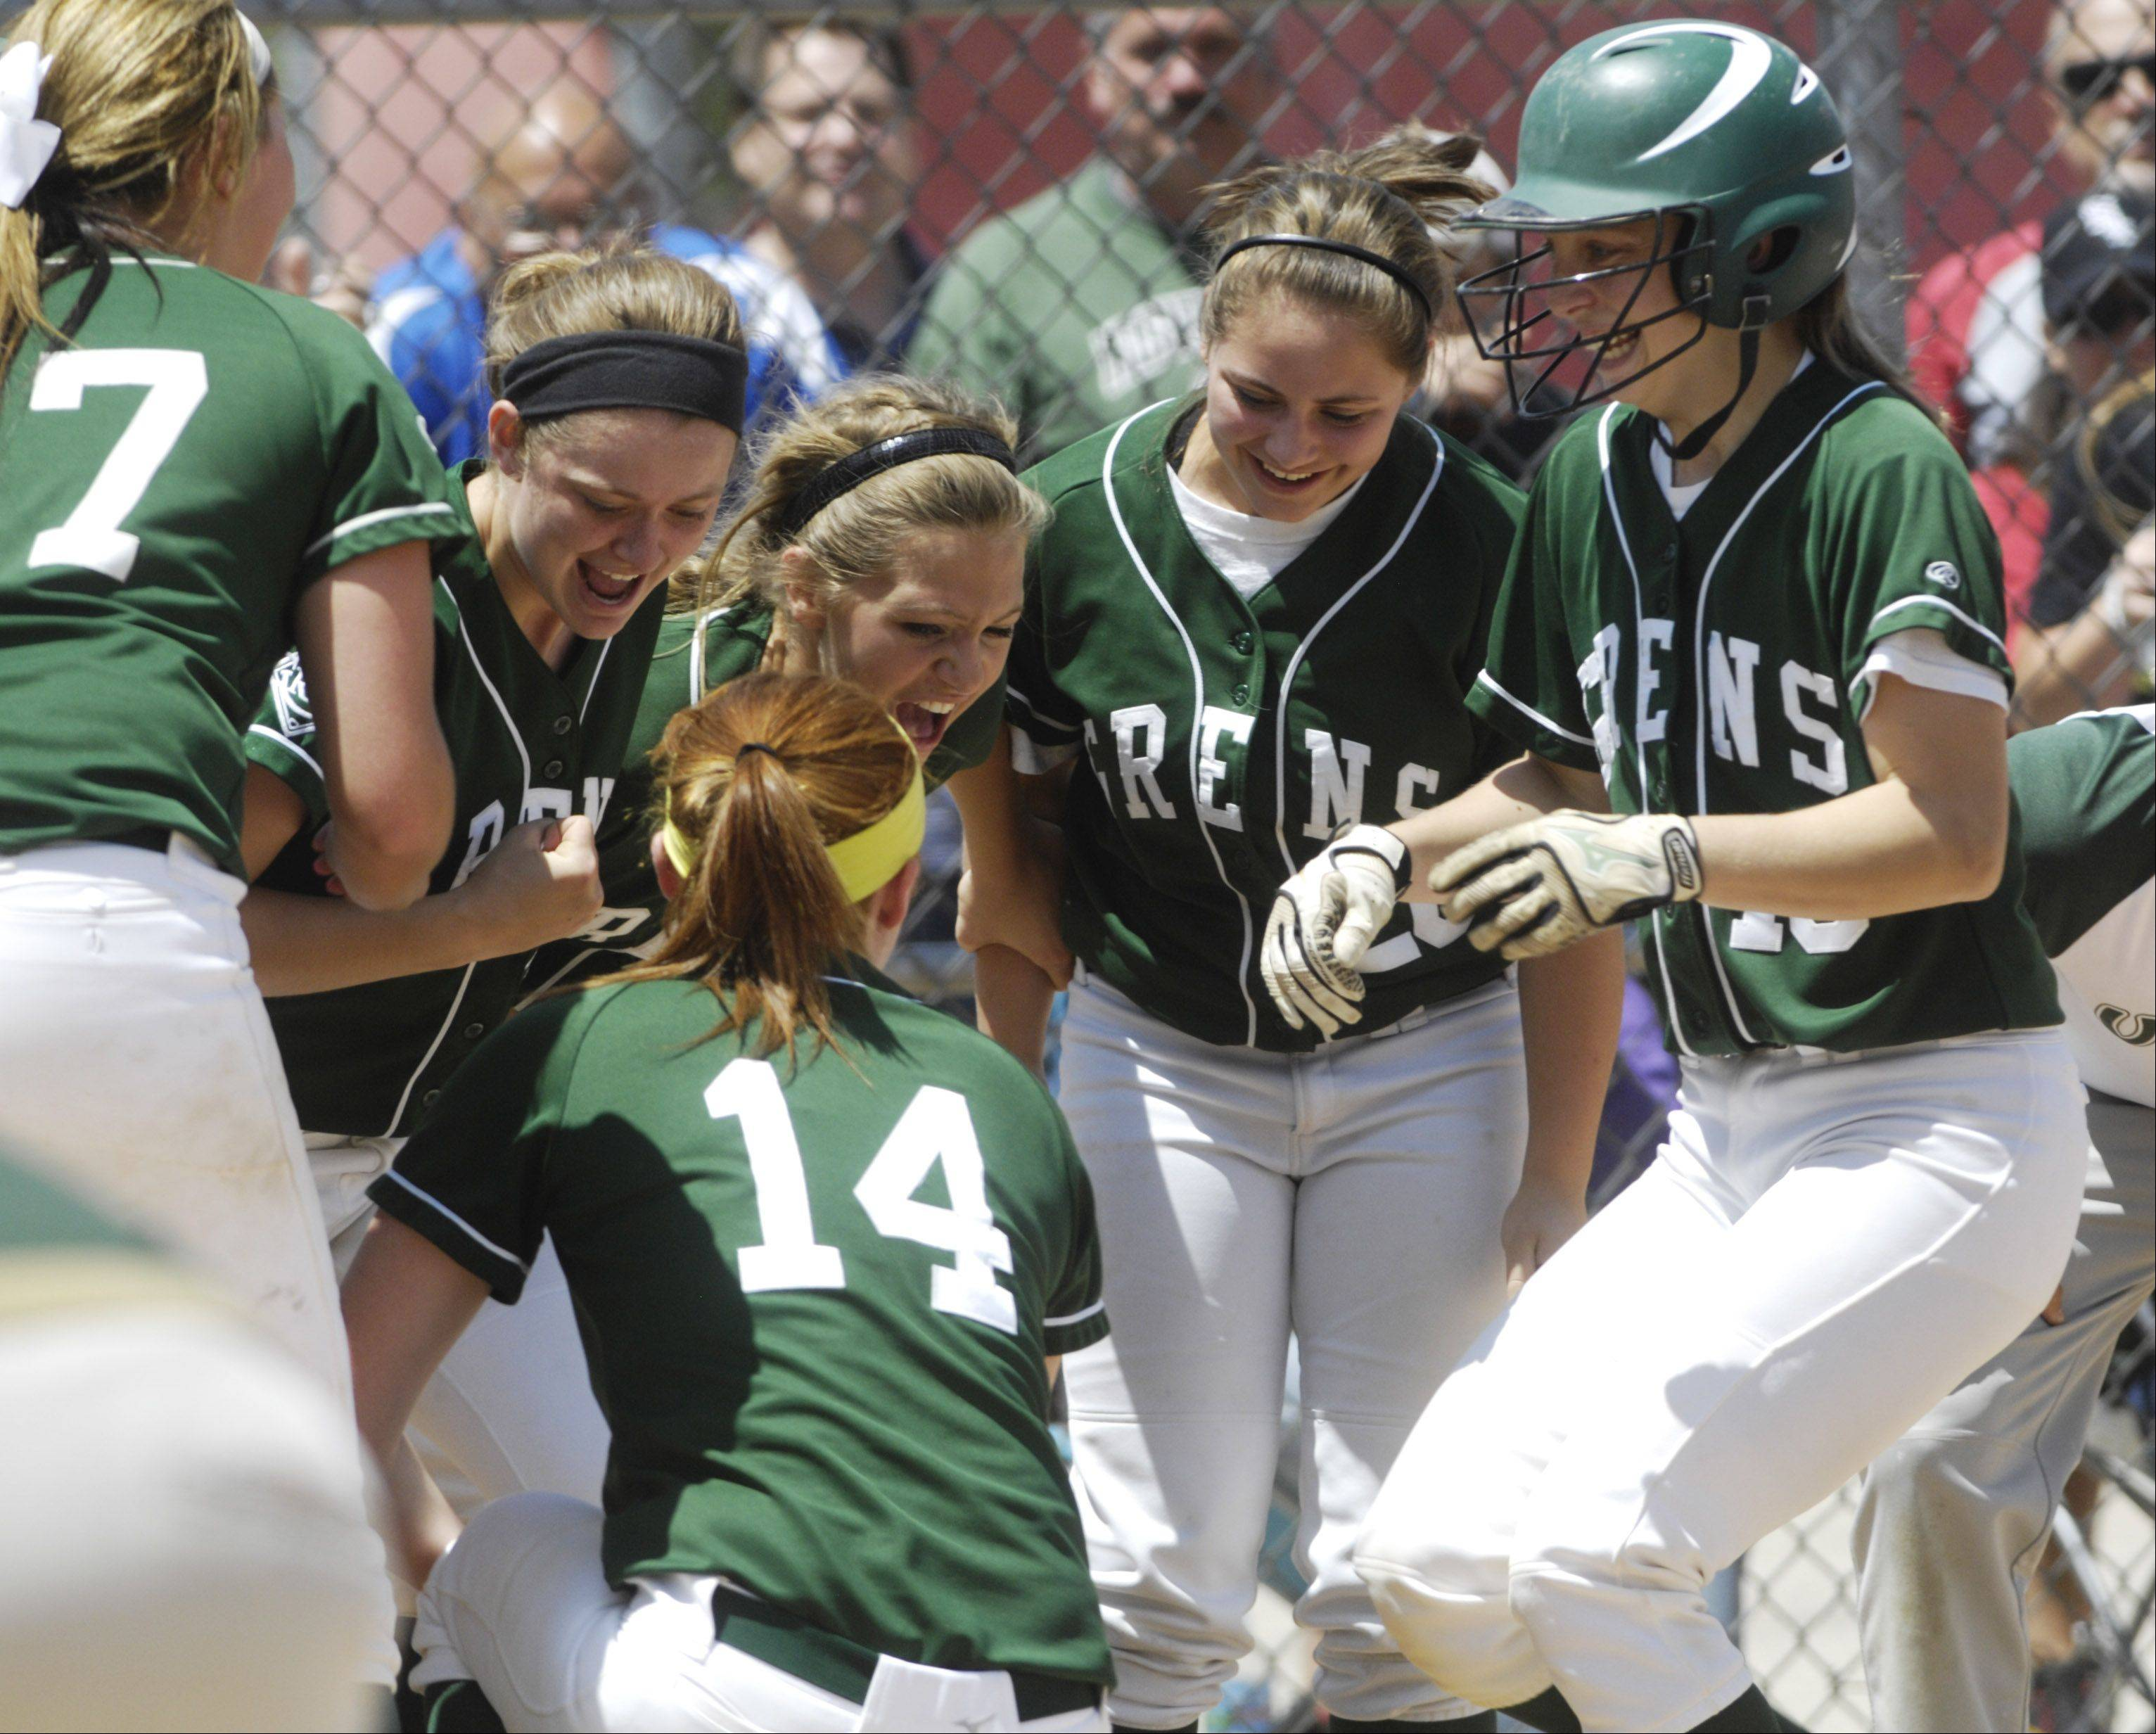 Elk Grove's Devan Parkison, right, is greeted at the plate by her teammates after her eighth-inning home run gave the Grens the lead over Conant during Saturday's sectional final at Barrington.